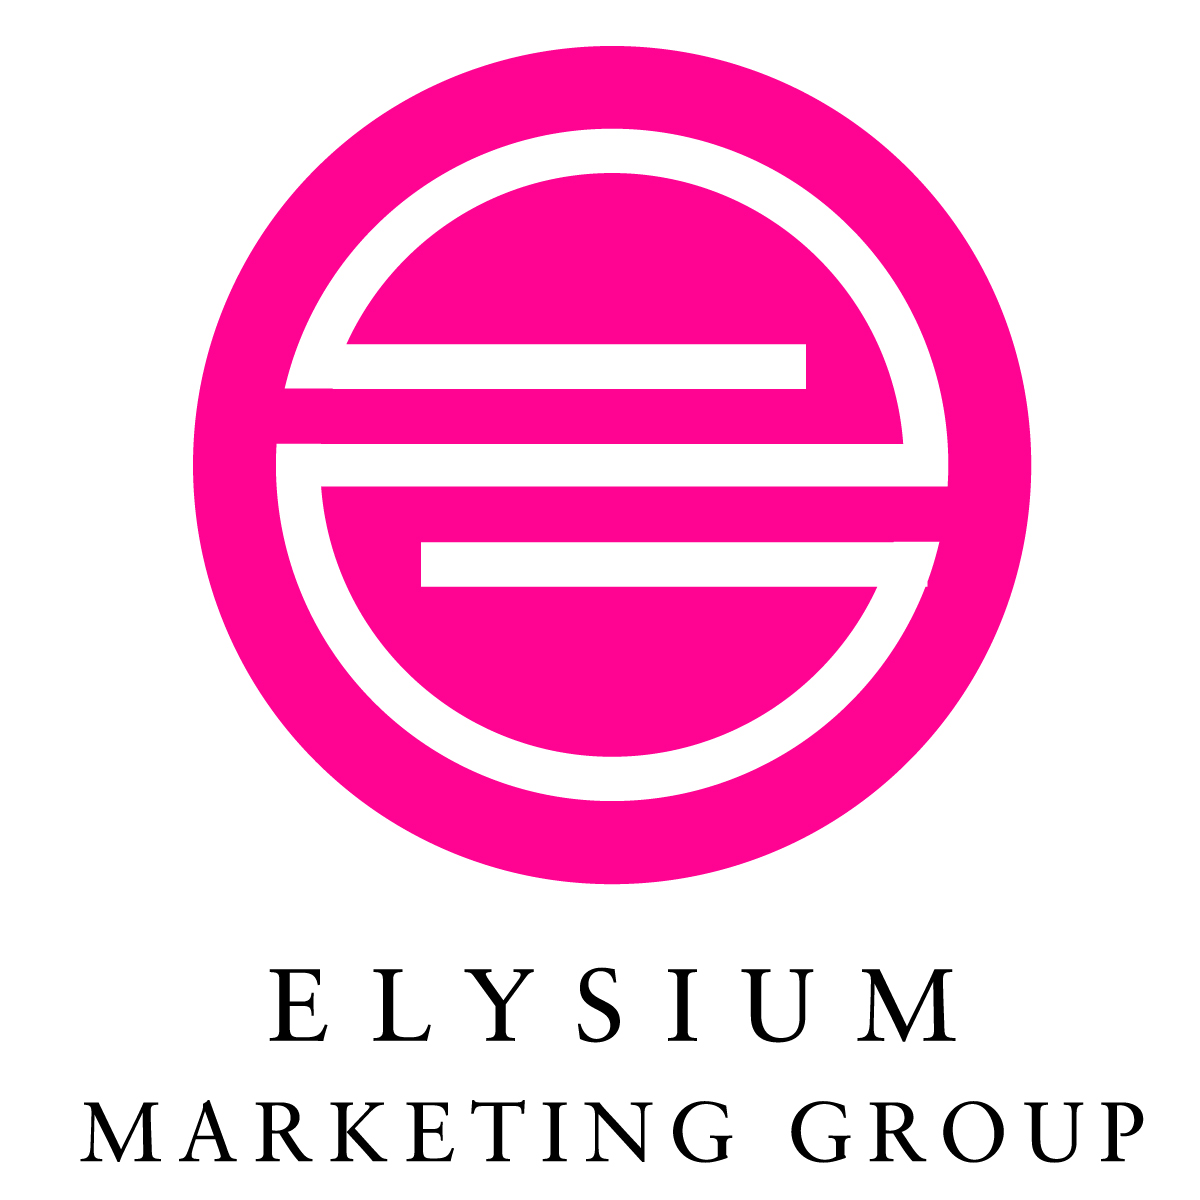 Elysium Marketing Group